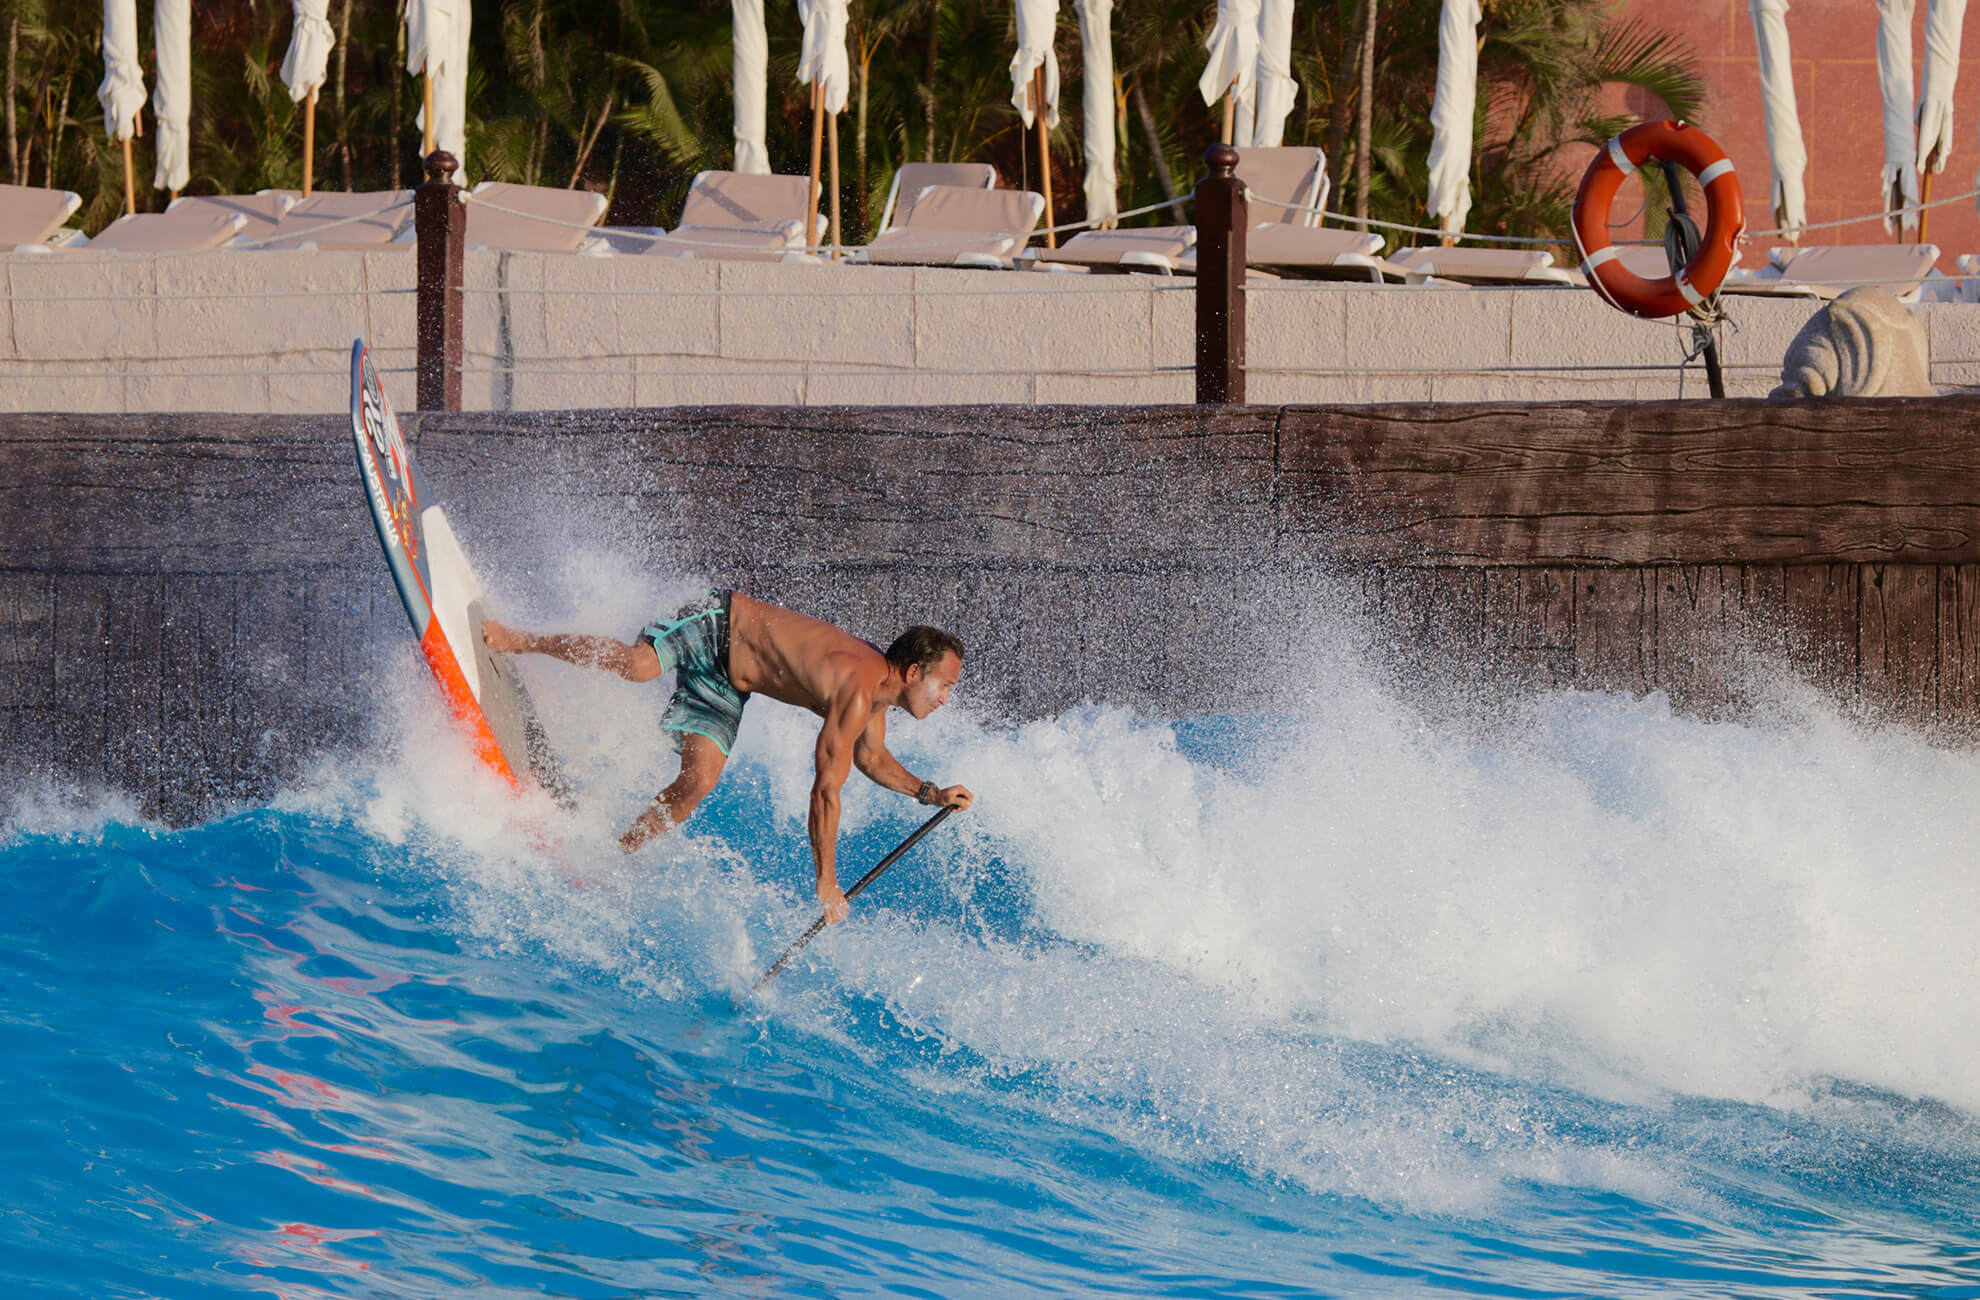 product-olympic-surf-gallery1